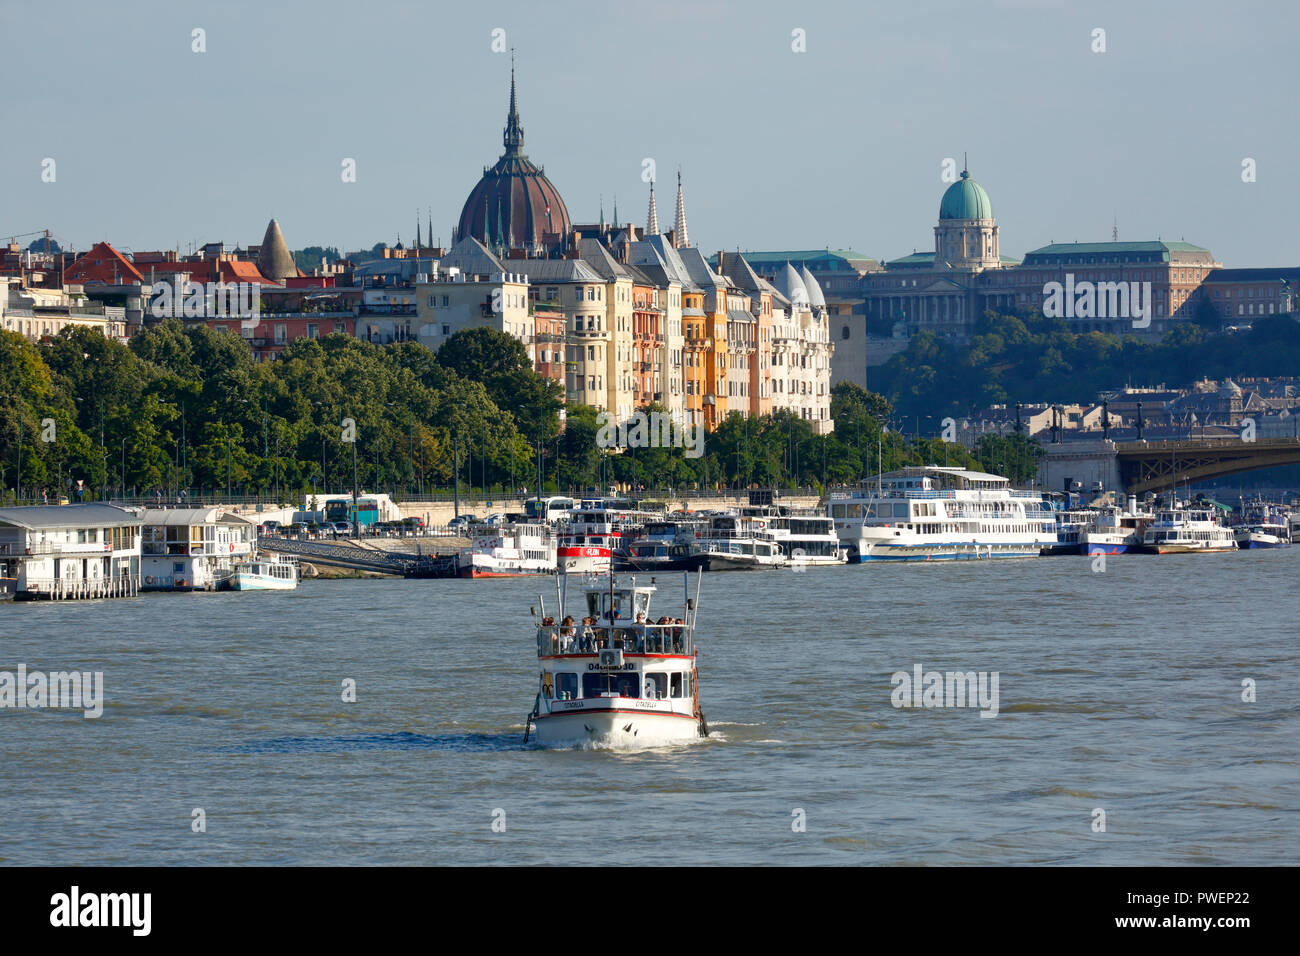 Hungary, Central Hungary, Budapest, Danube, Capital City, Danube bank of Pest, Danube landscape, business houses and residential buildings, shipping pier, ships, river navigation, left the dome of the parliament, right the Royal Palace, UNESCO World Heritage Site Stock Photo